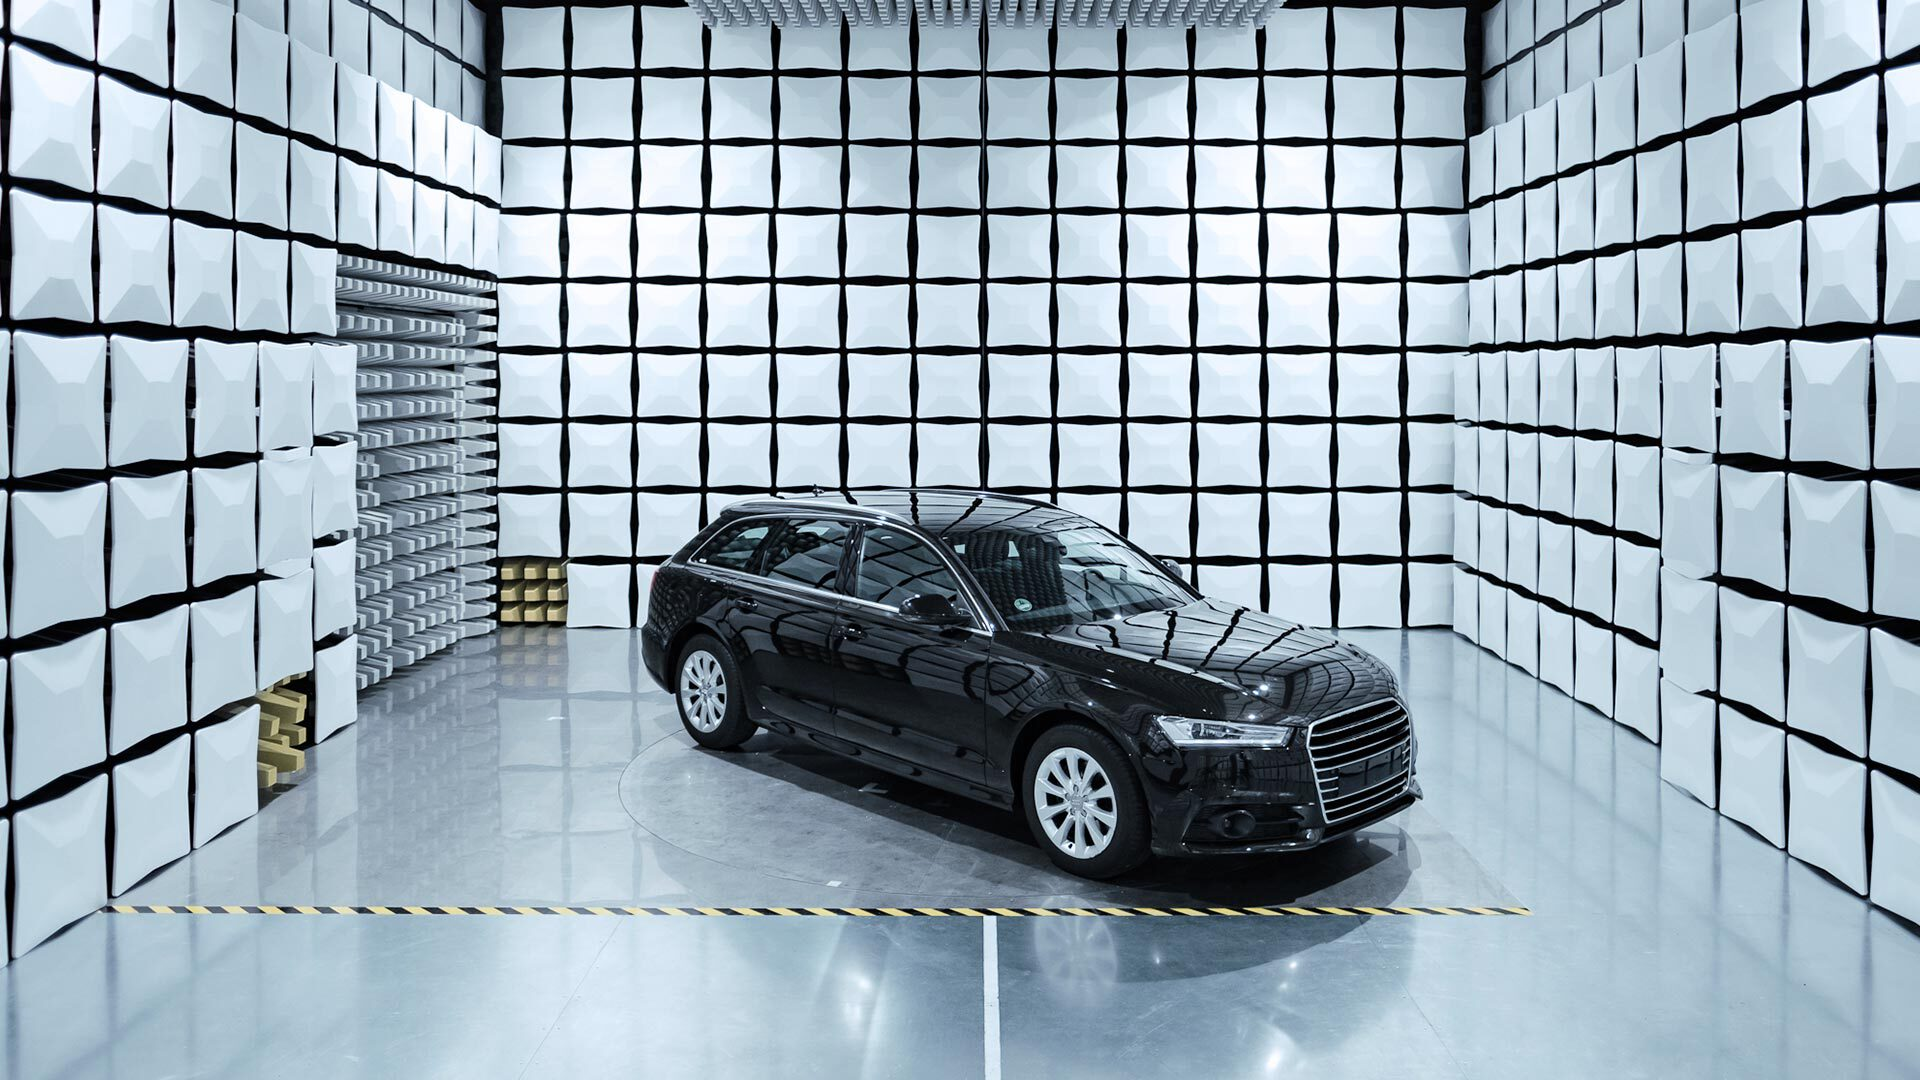 Black car inside a measuring laboratory.